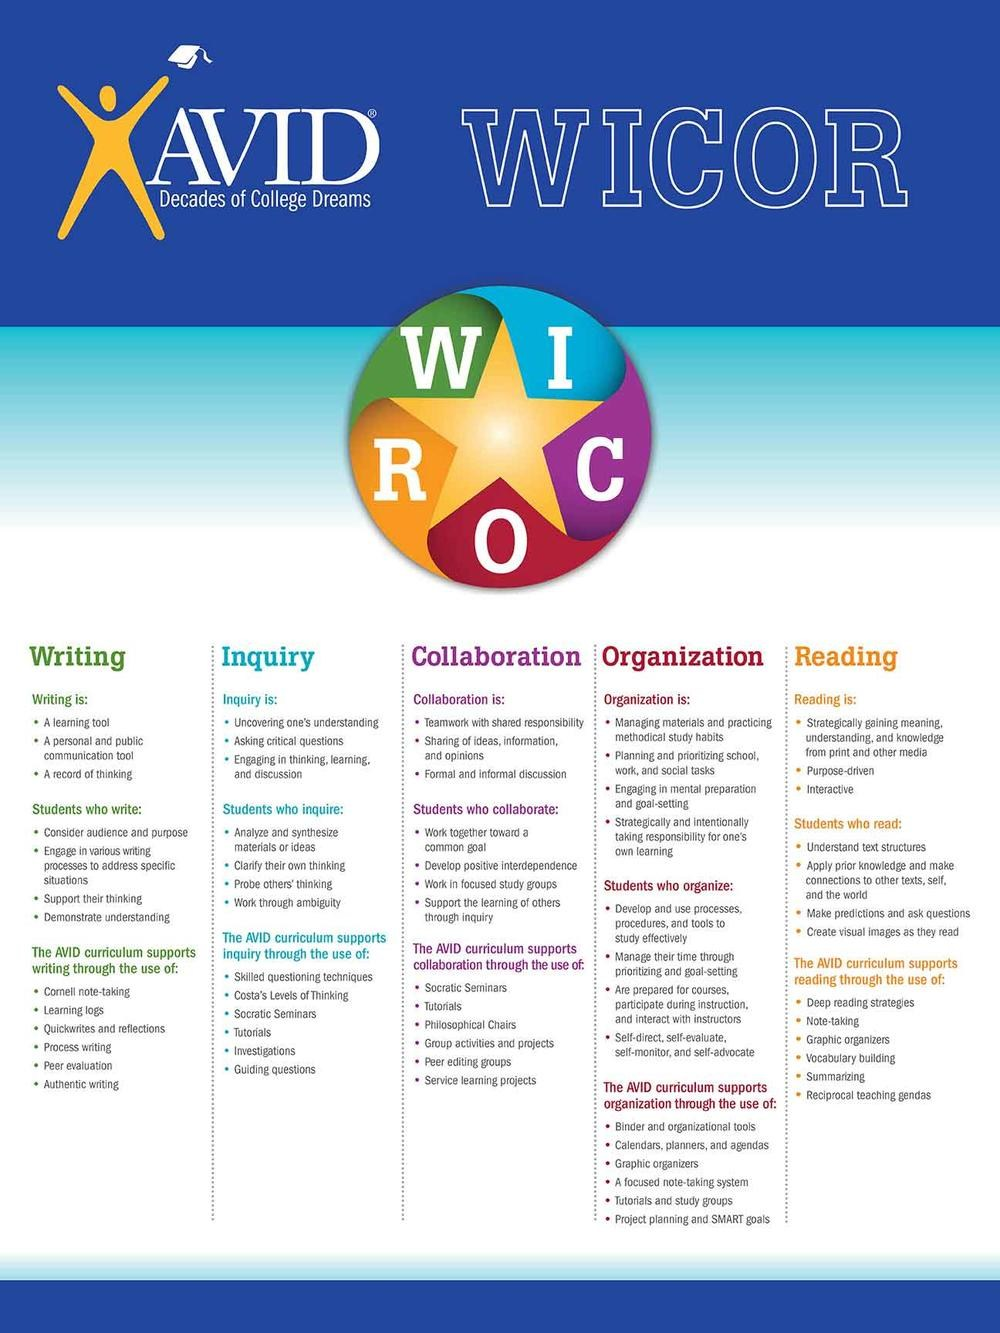 AVID WICOR Strategies